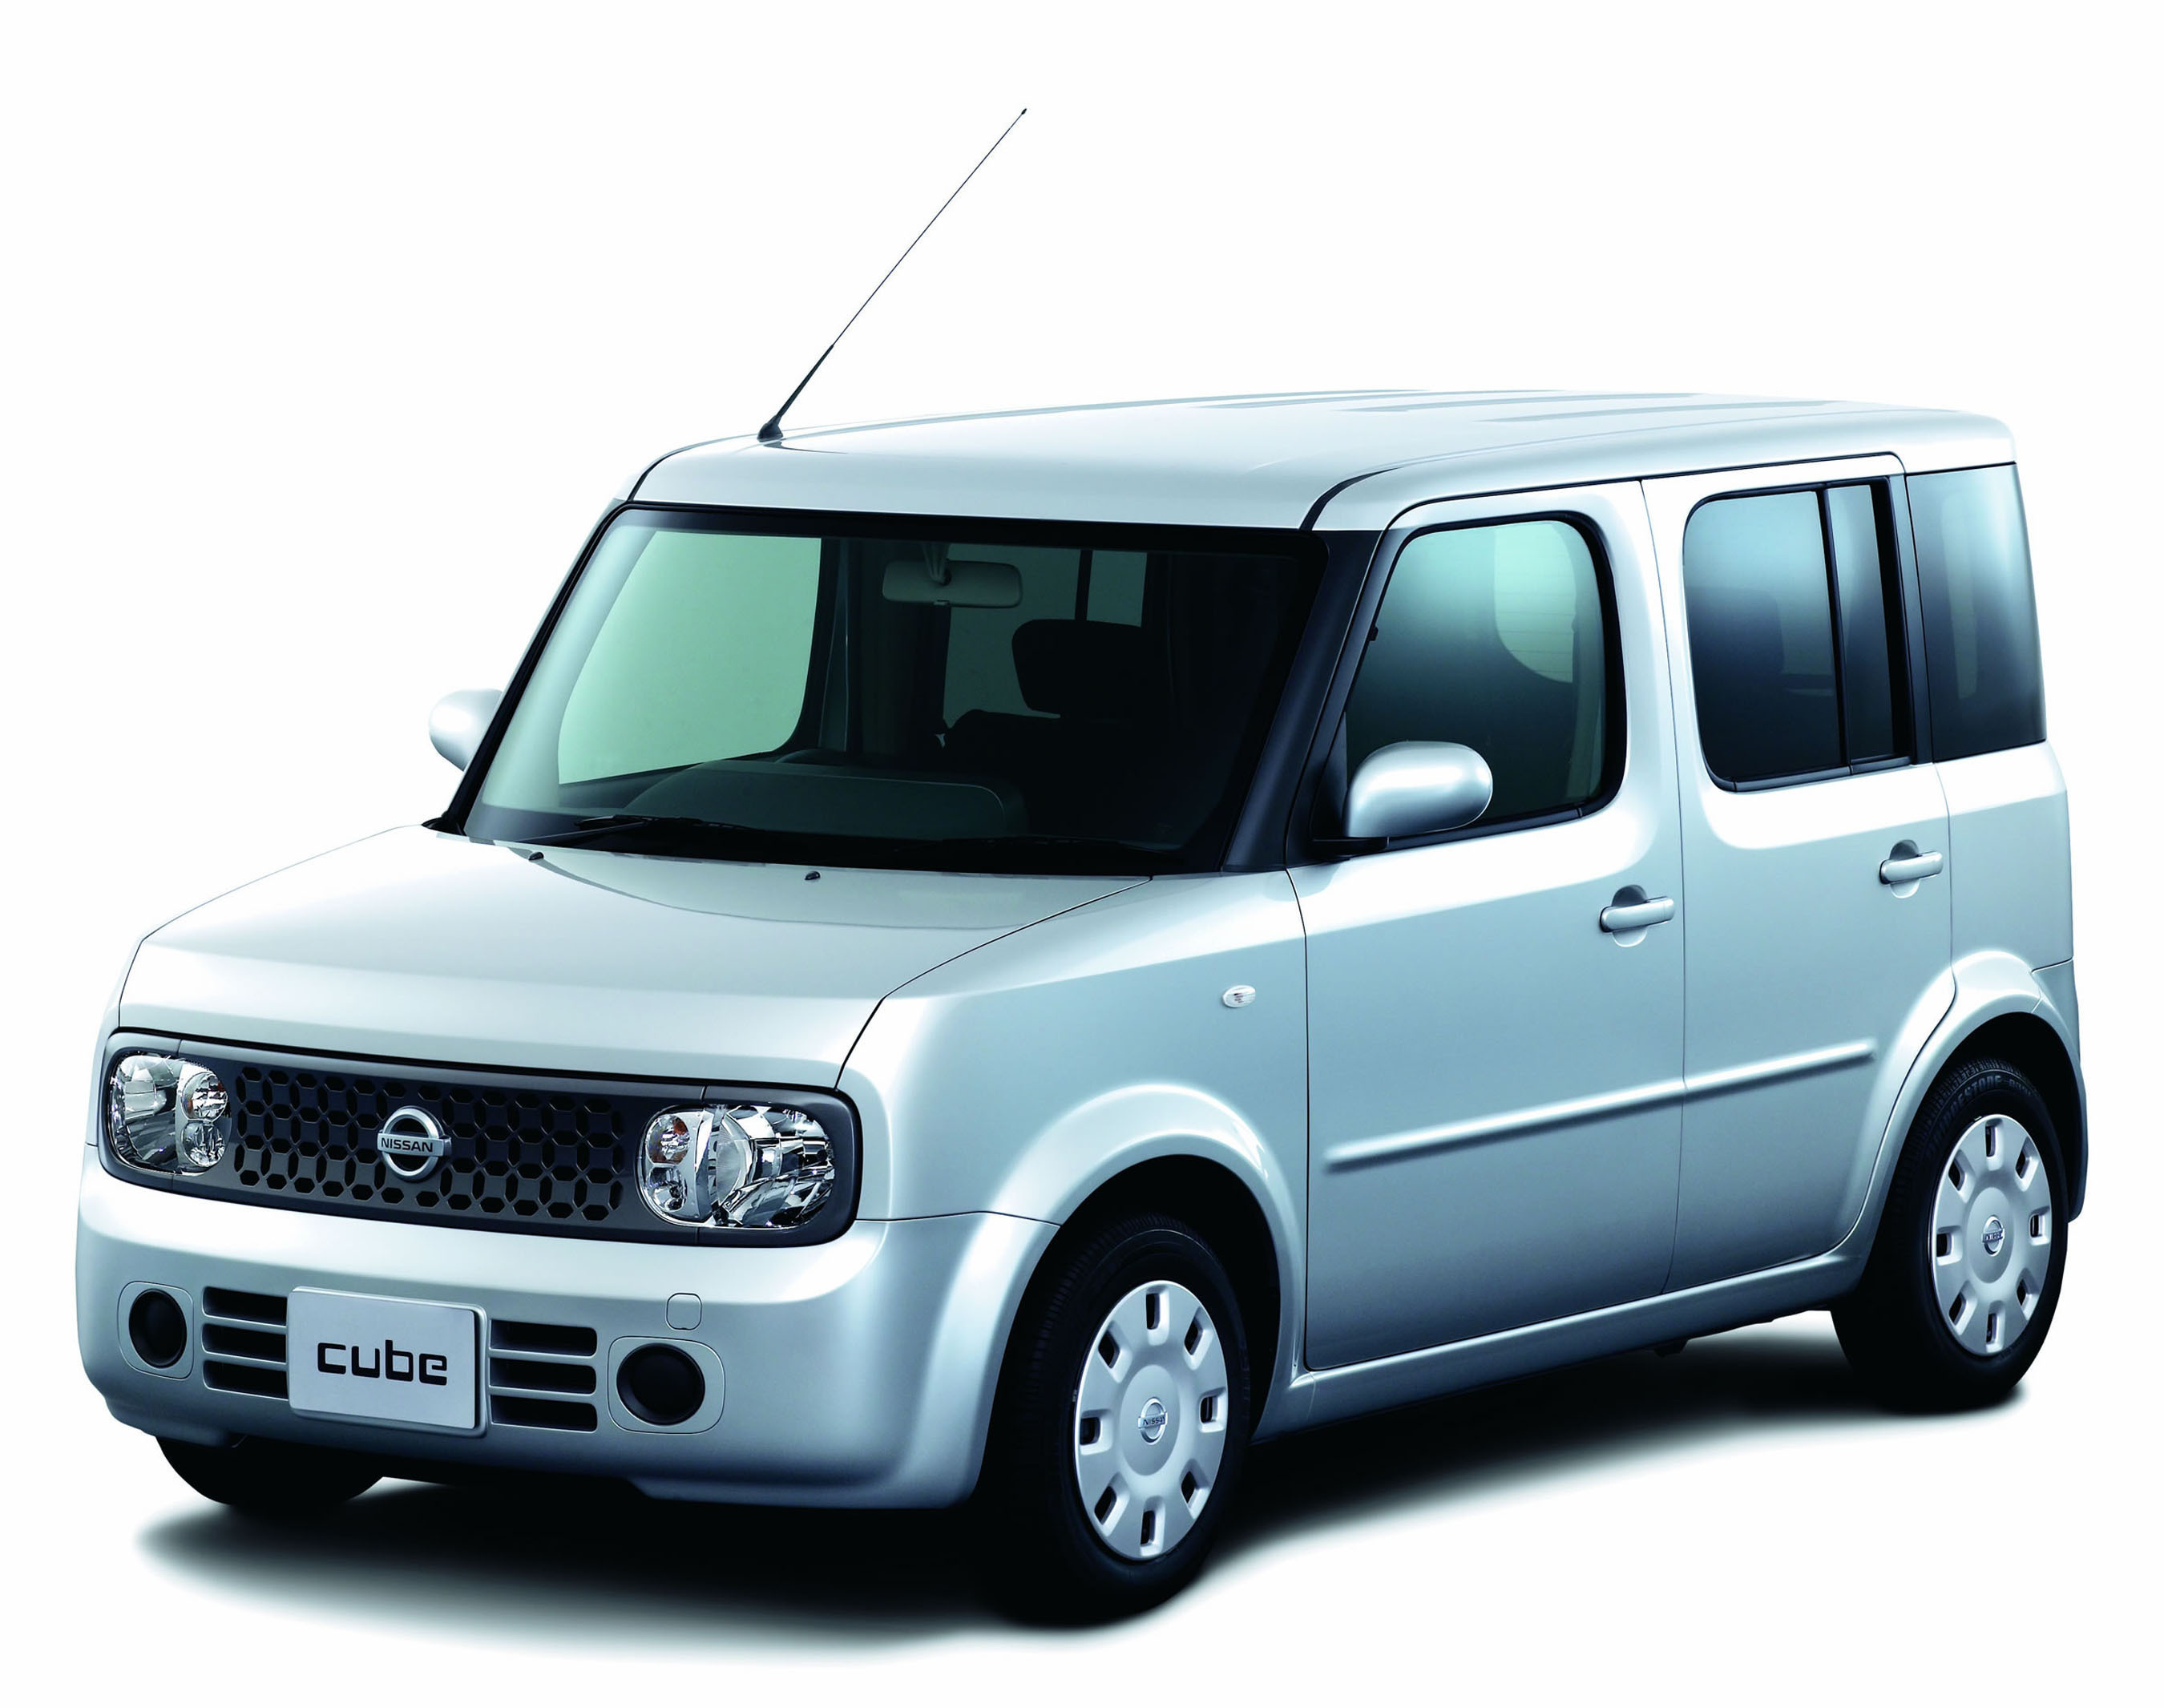 2009 Nissan Cube 1.8 SL Review